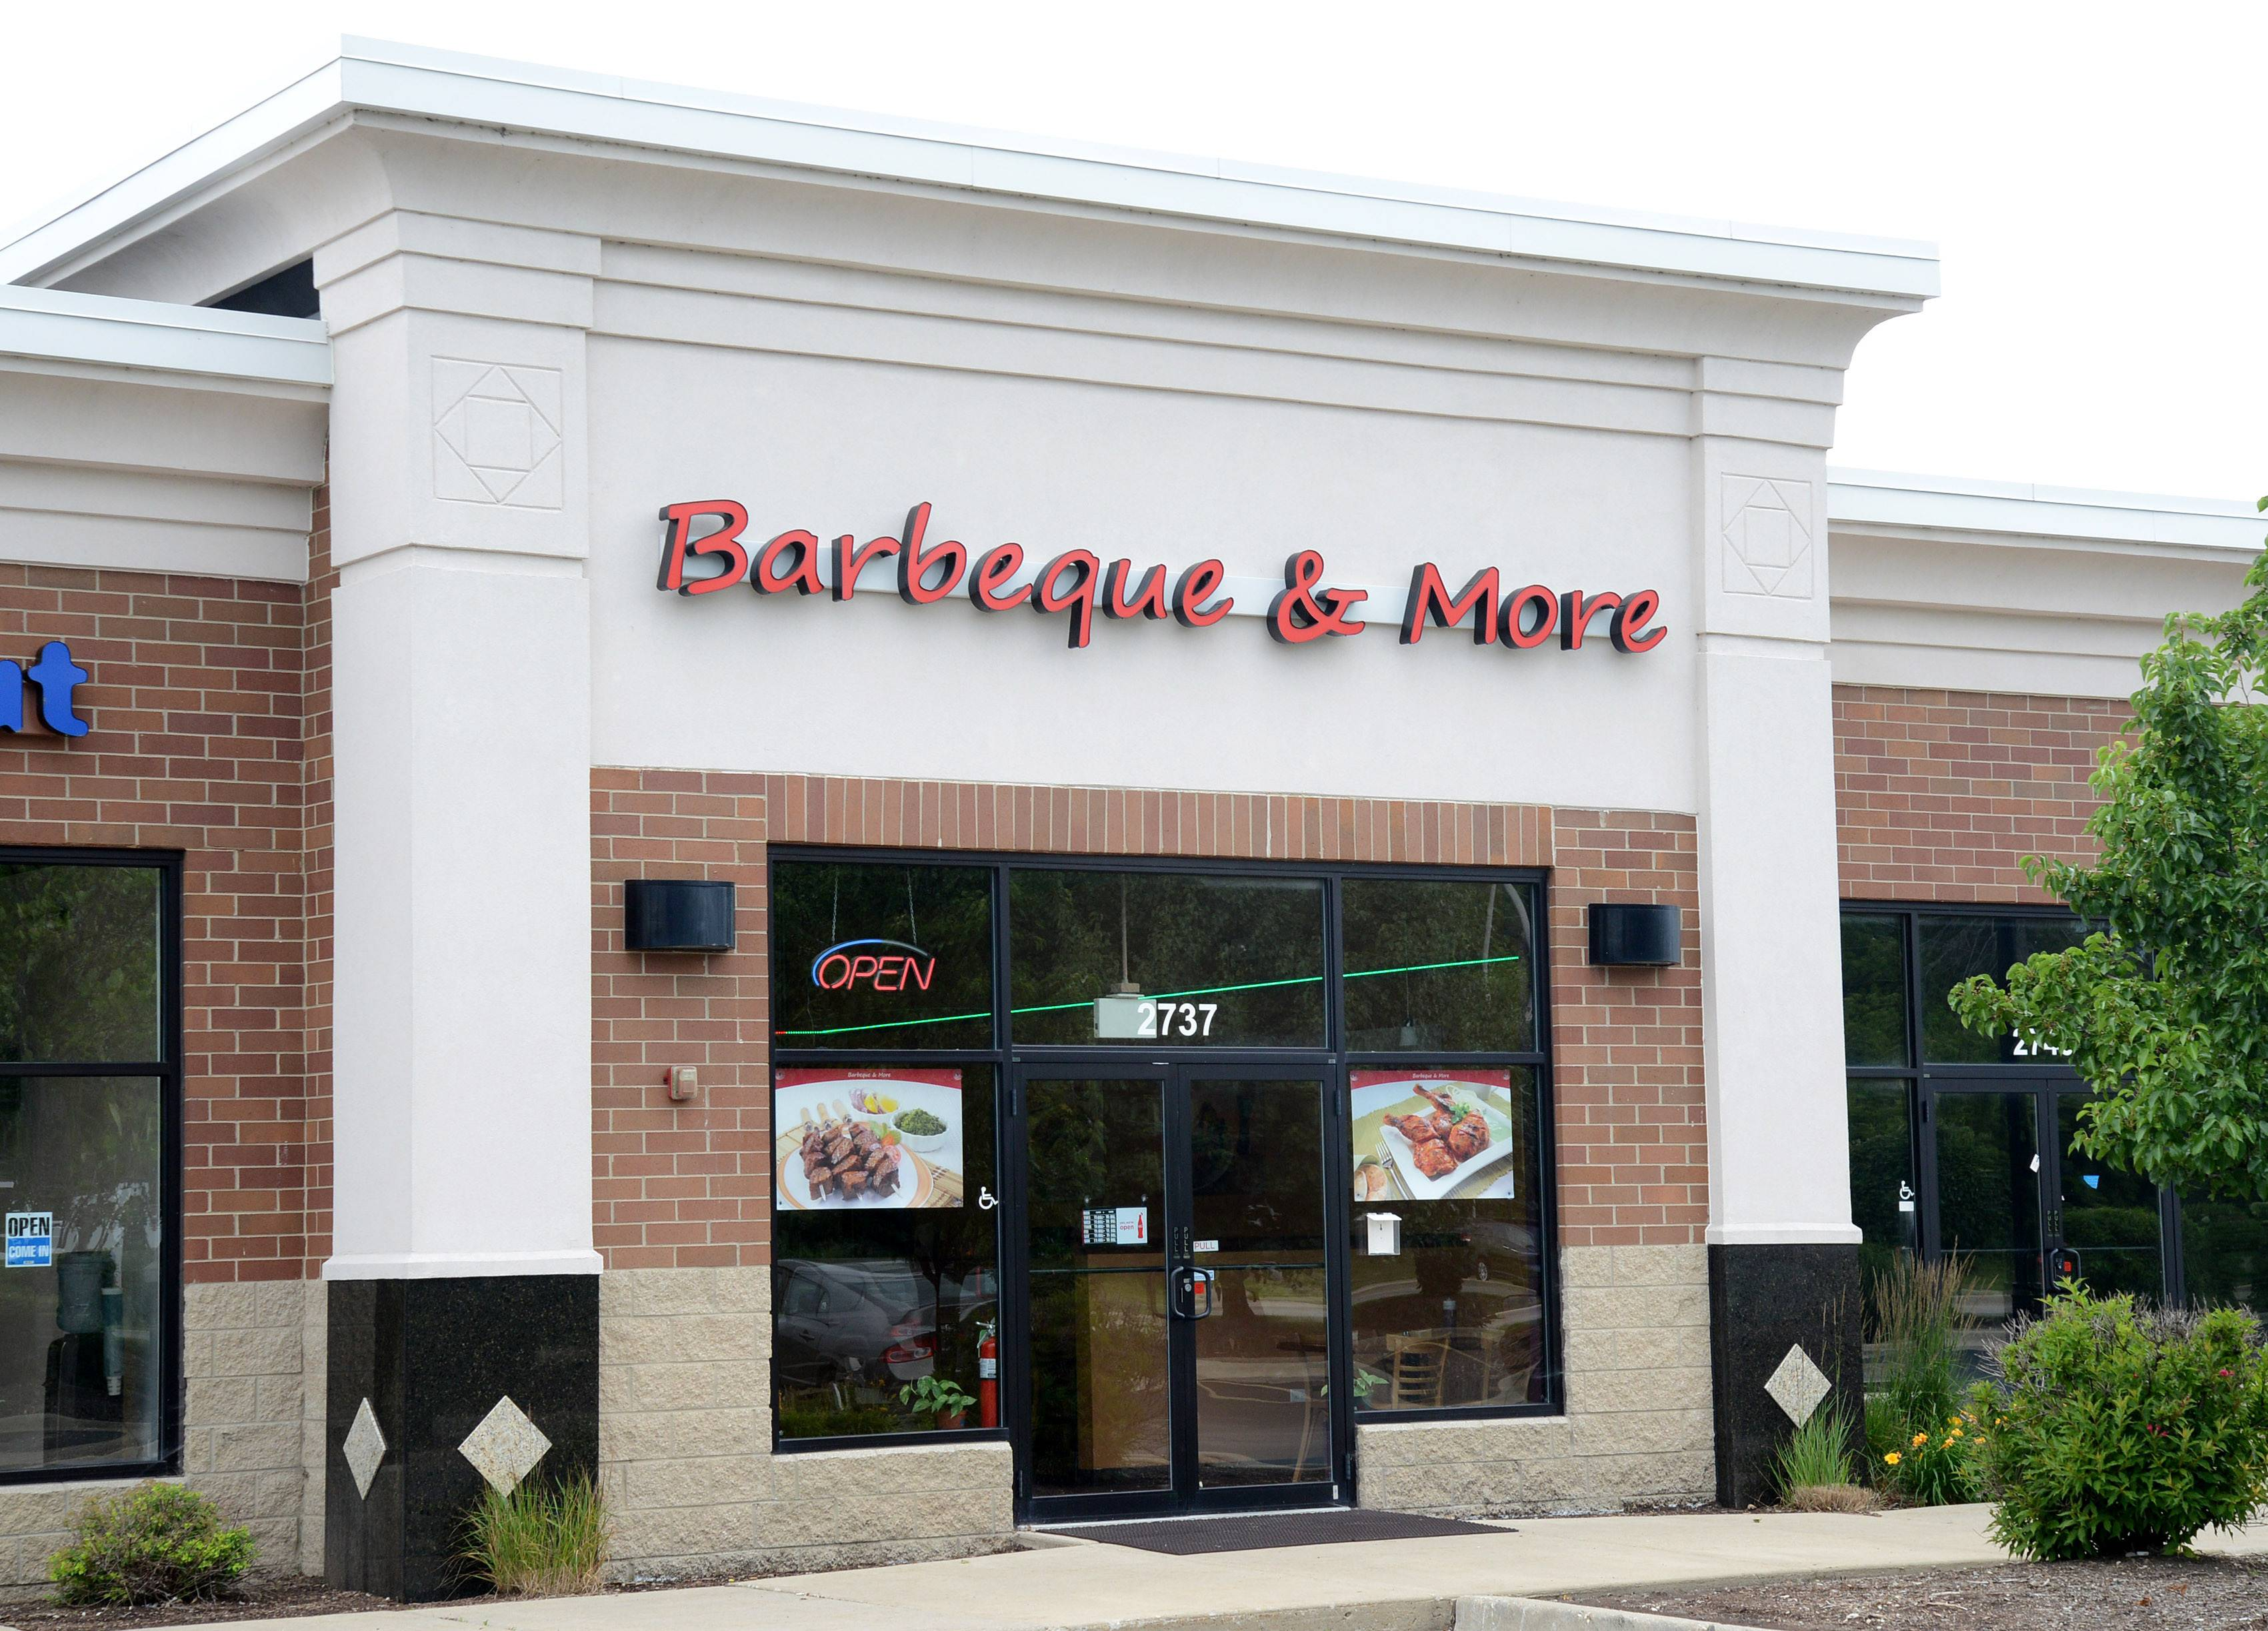 Barbeque & More, an Indian/Pakistani restaurant, prepares each meal fresh to order. It is at 2719 W. Algonquin Road in Algonquin.